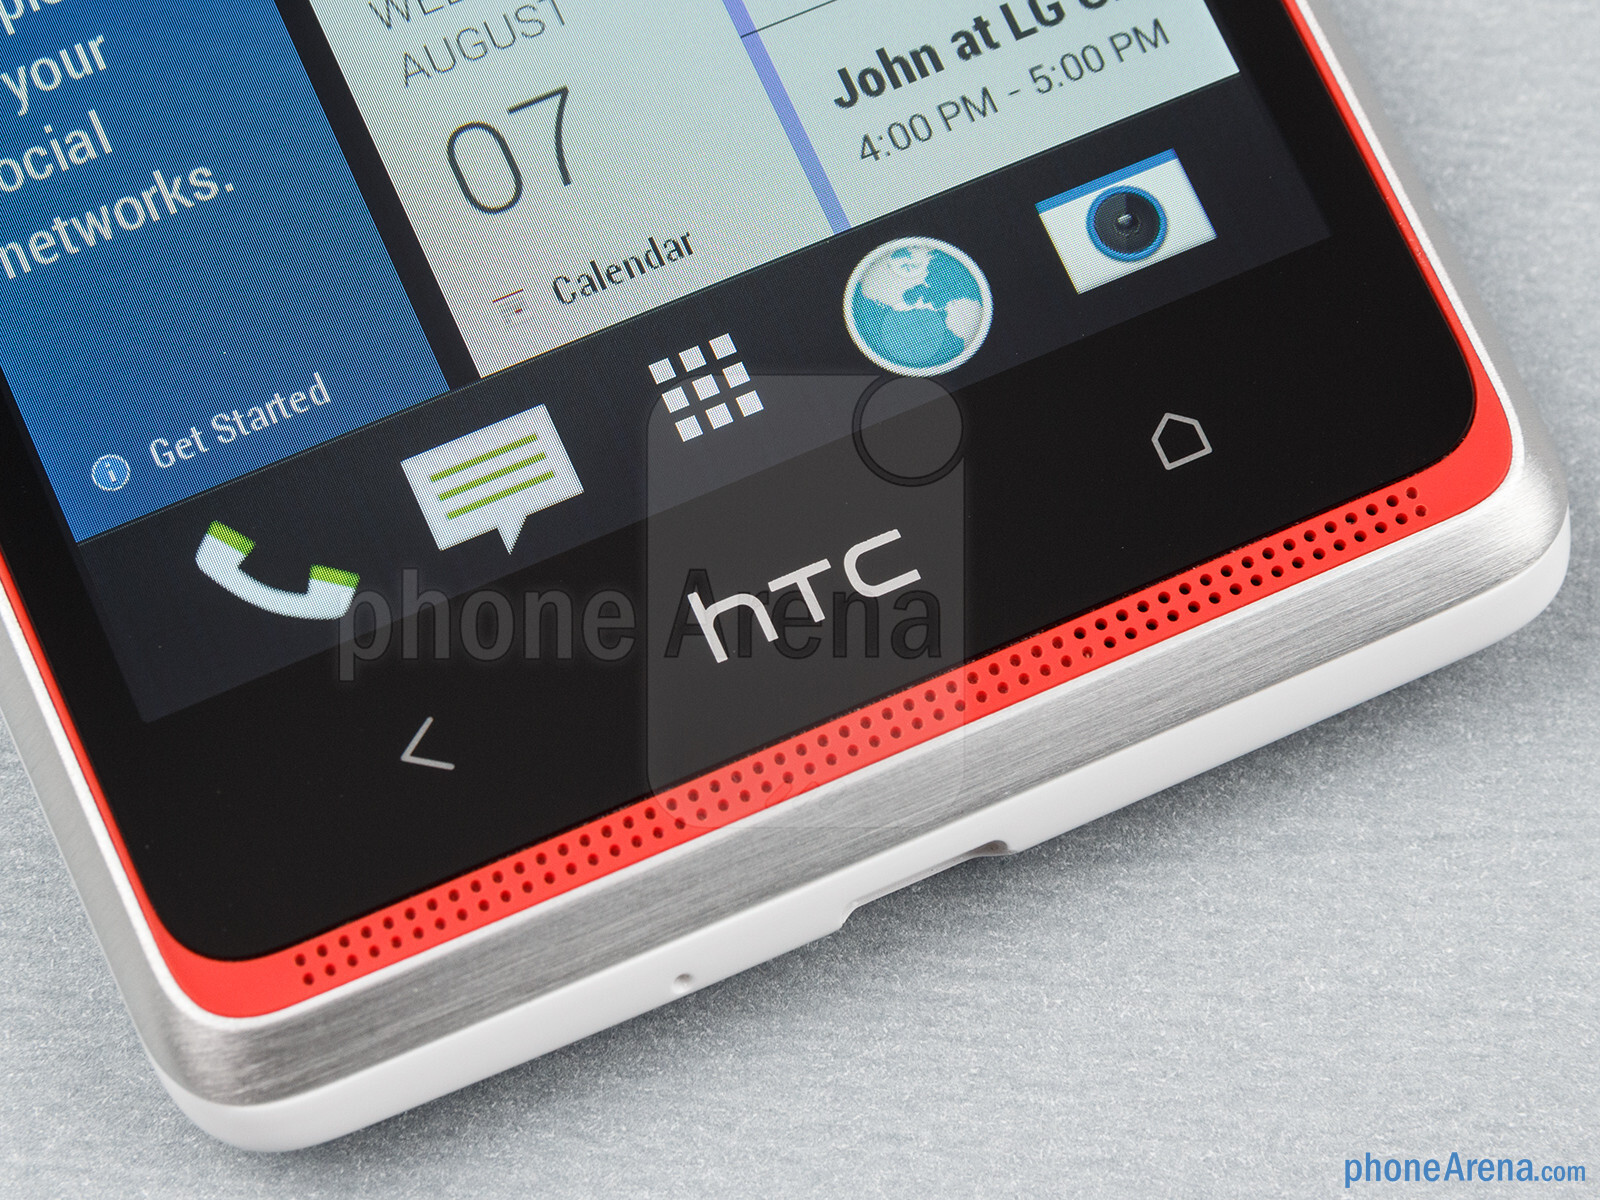 ability htc desire 600 review and price aren't